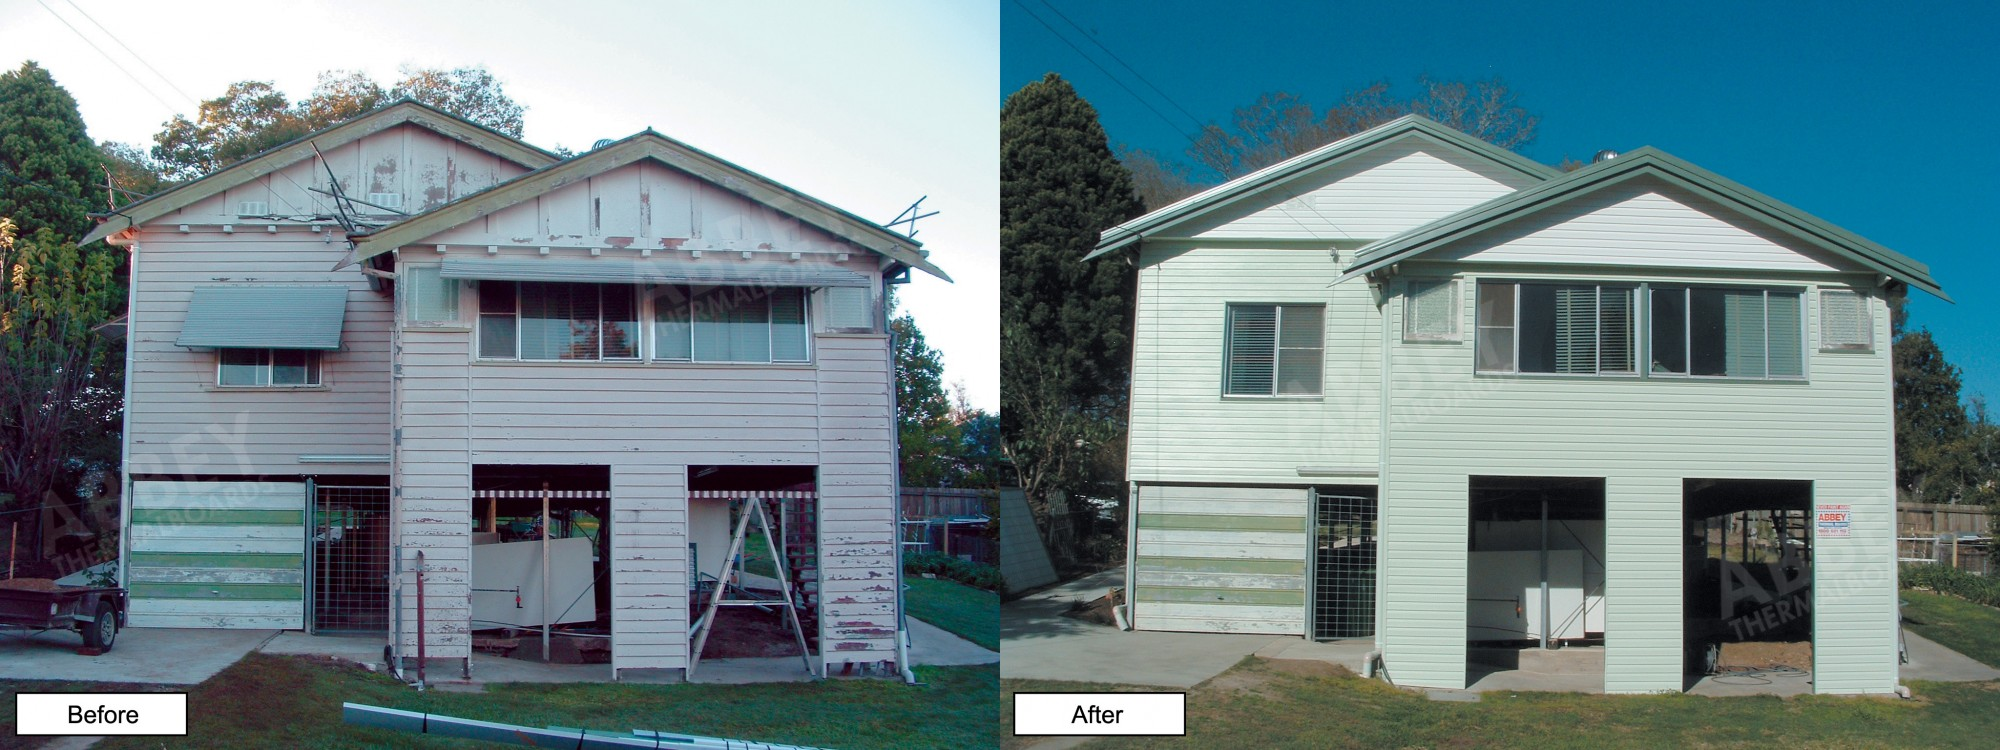 Before and after of house cladding